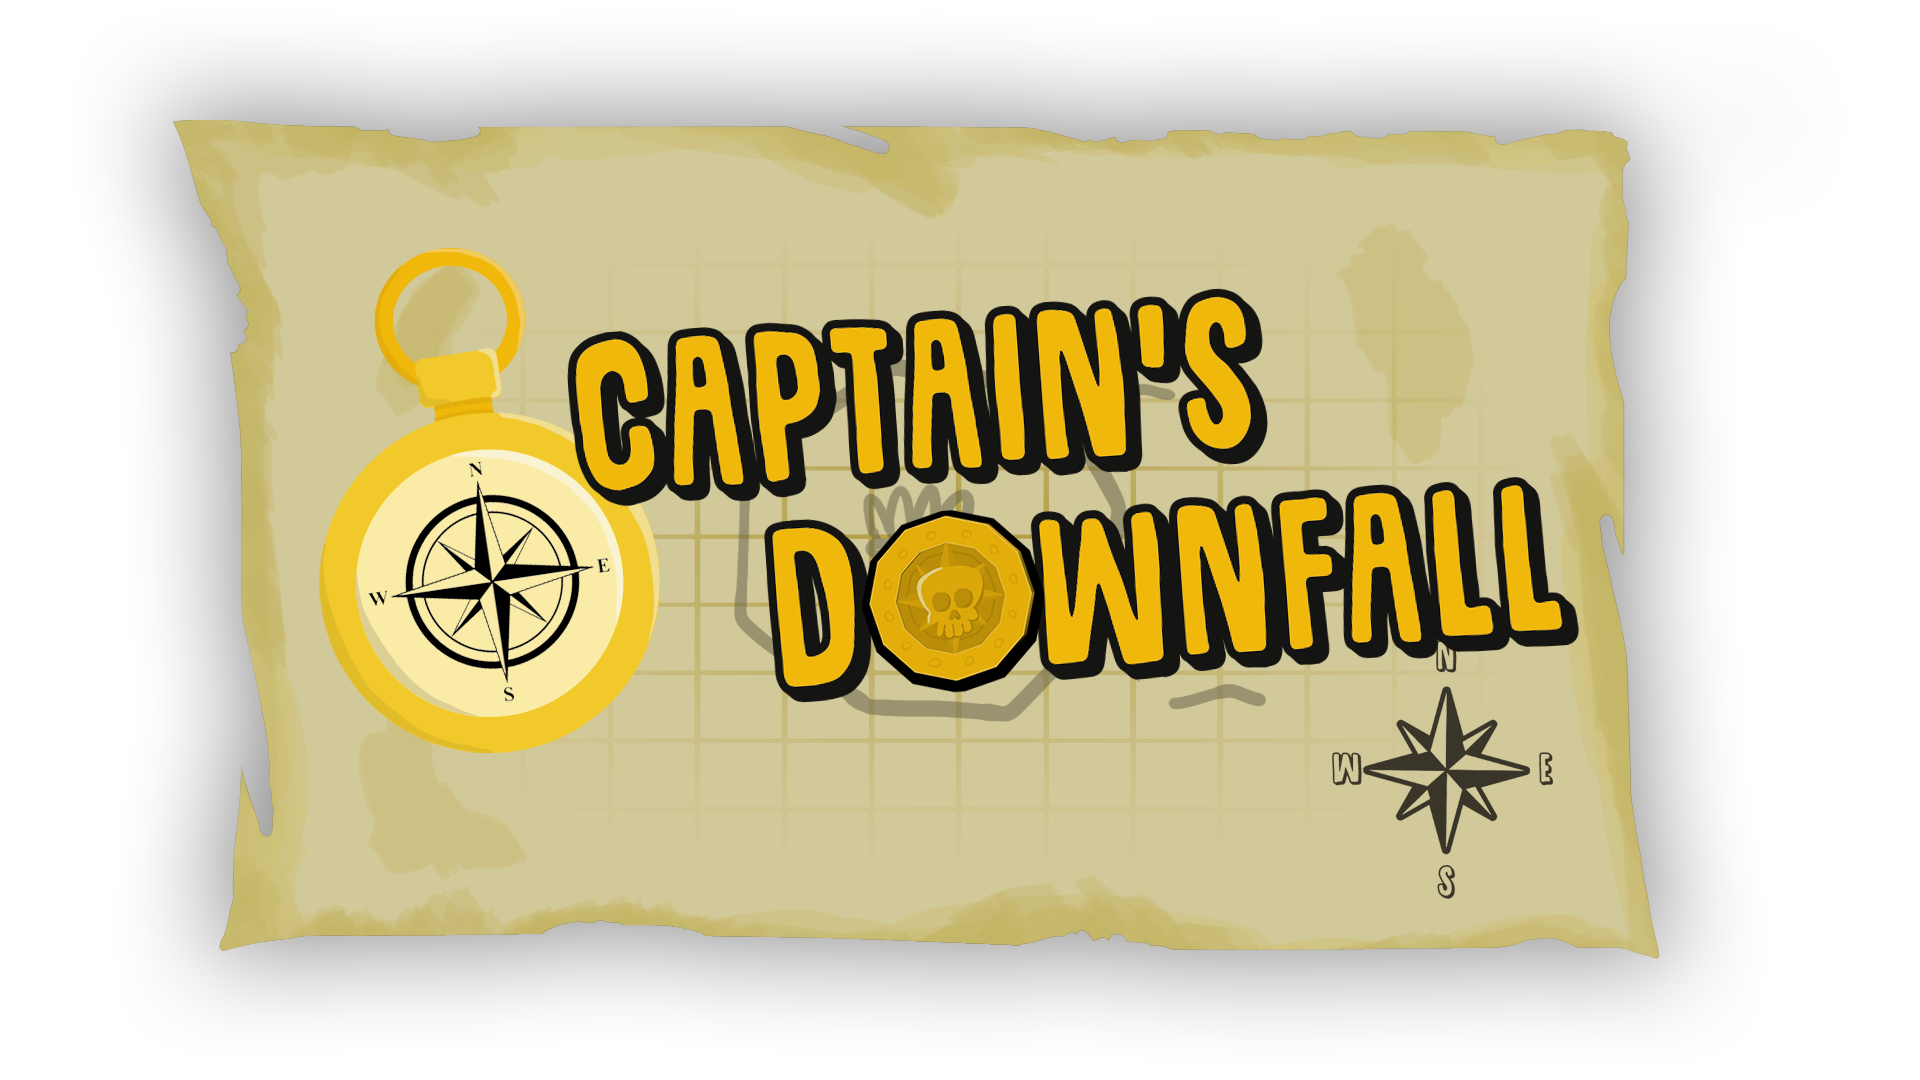 Captain's Downfall